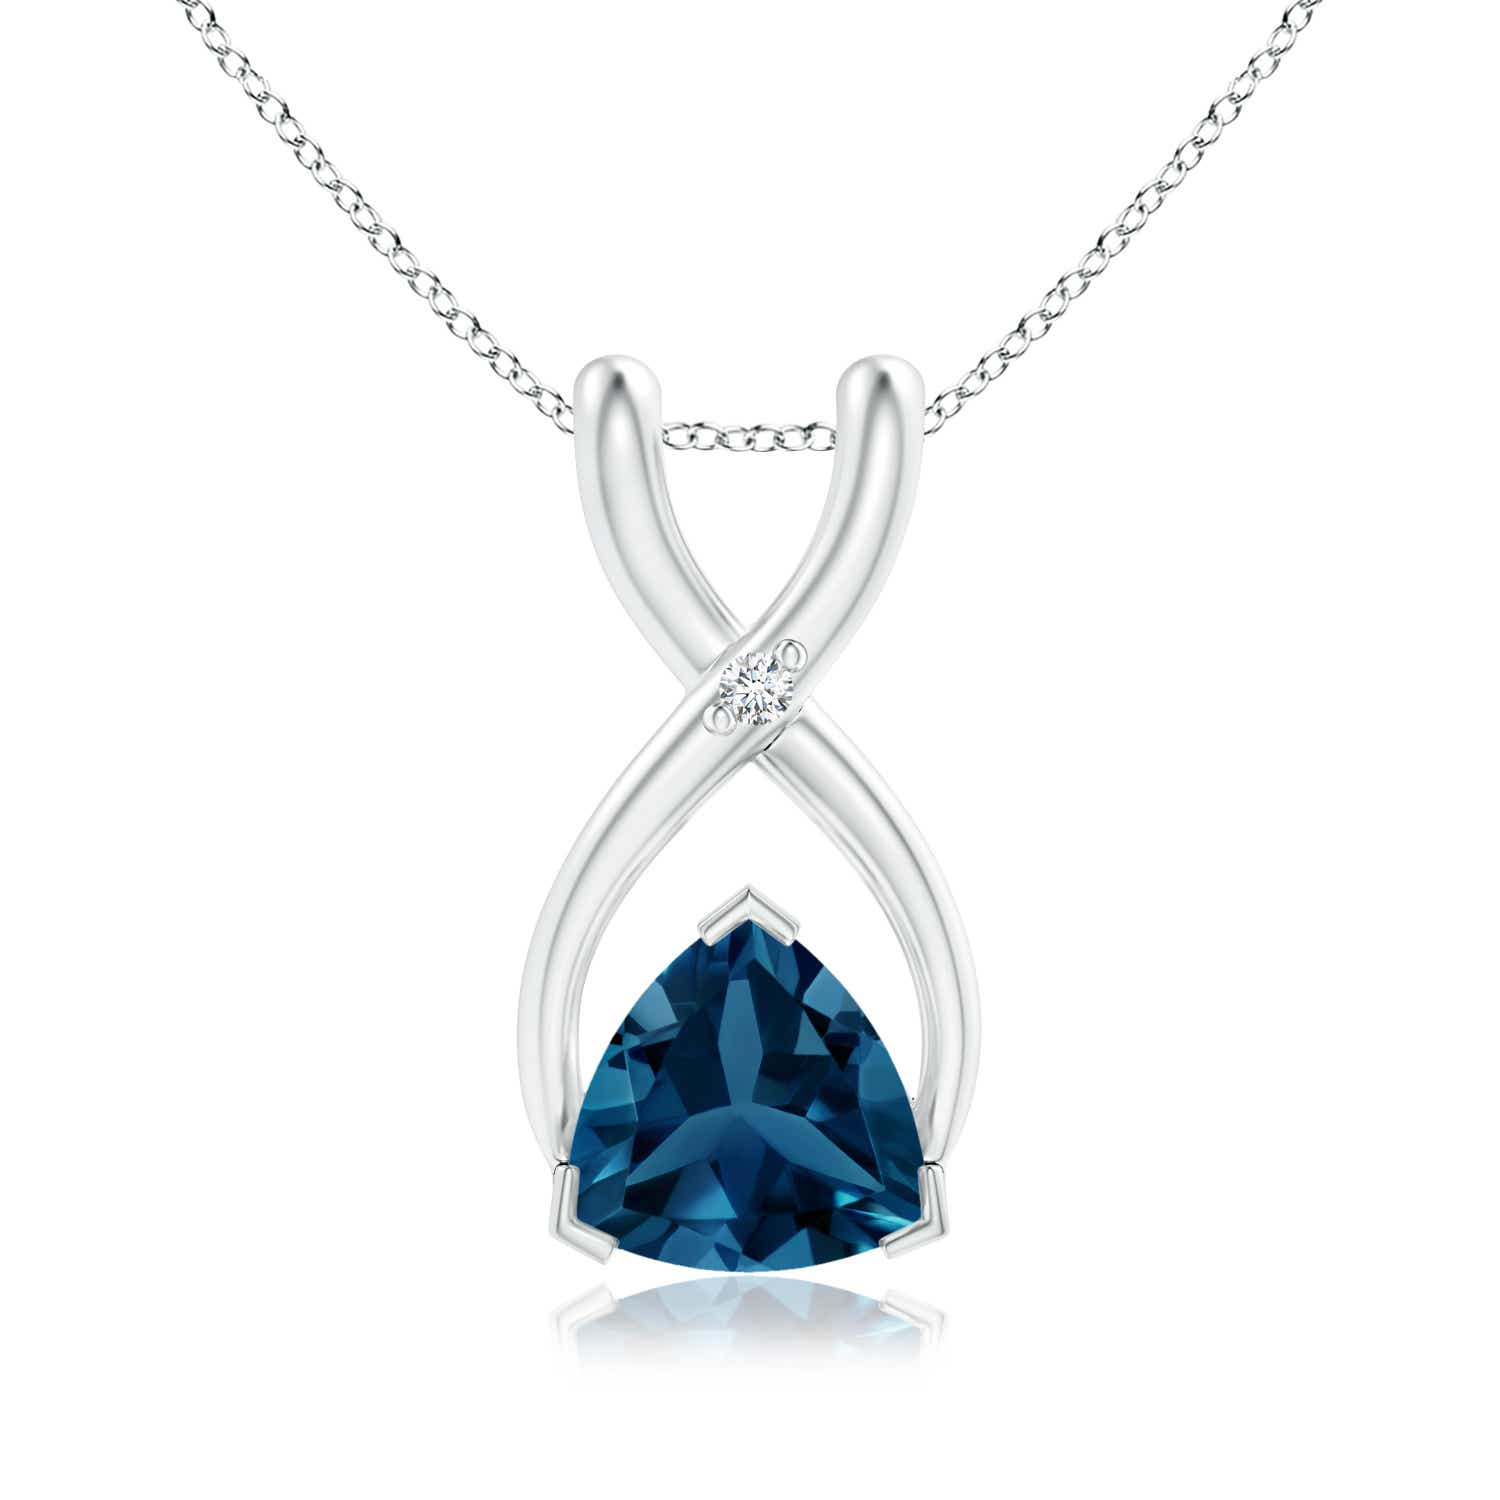 London blue topaz pendant necklace with diamond 14k yellow gold 18 london blue topaz pendant necklace with diamond 14k aloadofball Images